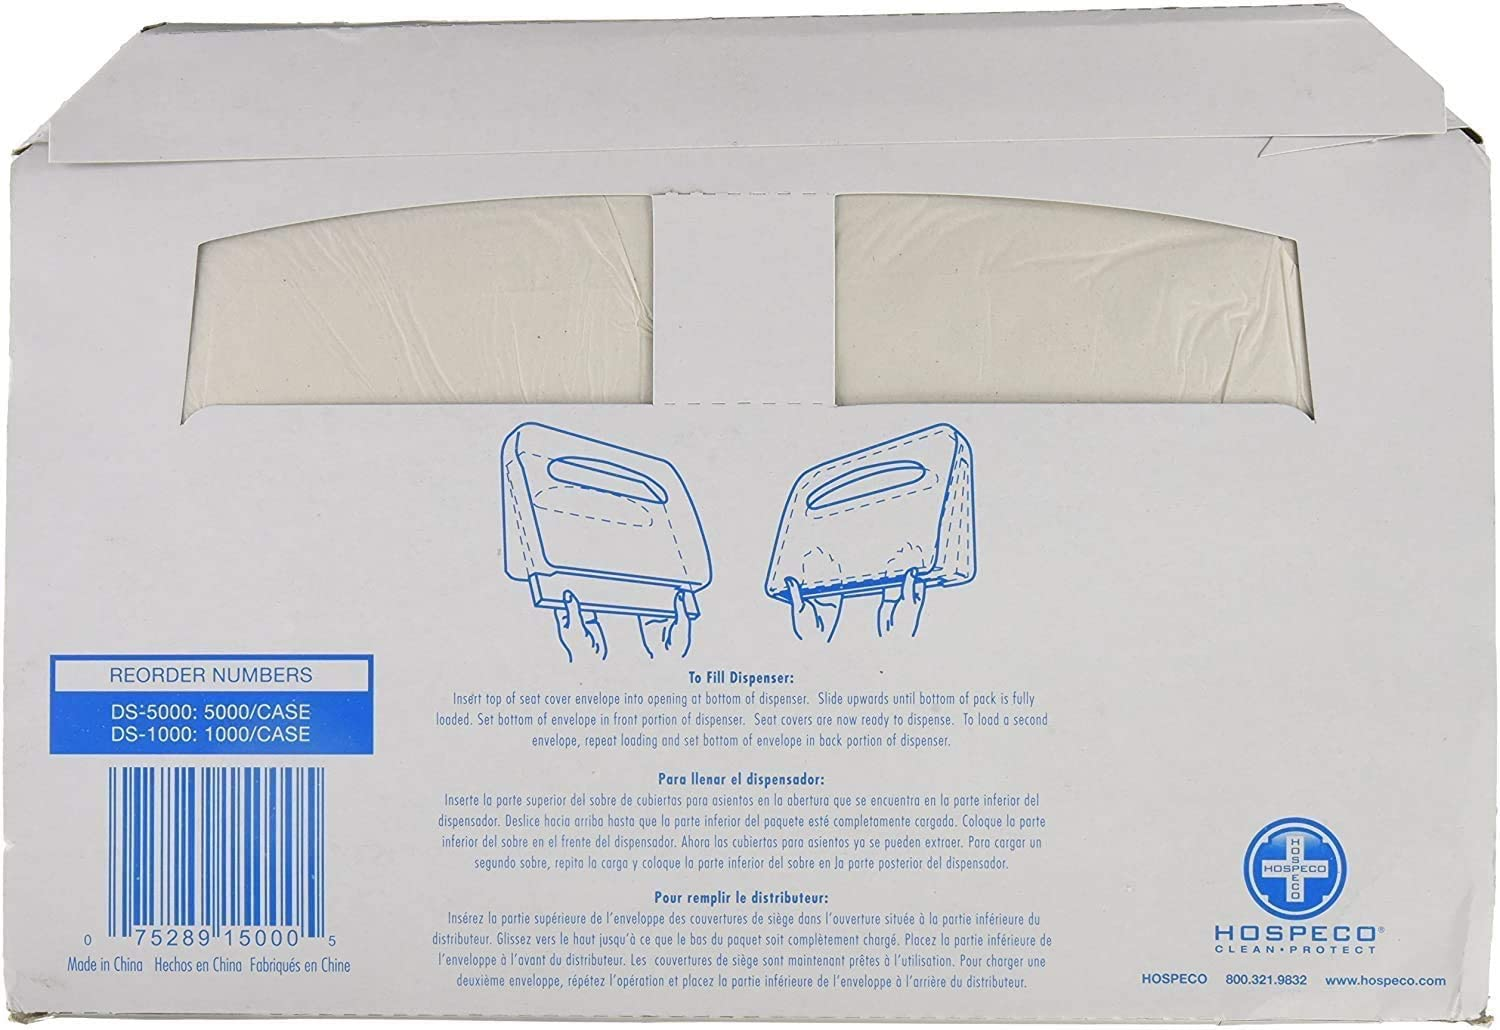 Discreet Seat DS-1000 Half-Fold Toilet Seat Covers, White (4 Pack of 250) Near White 1 case (1000 covers)